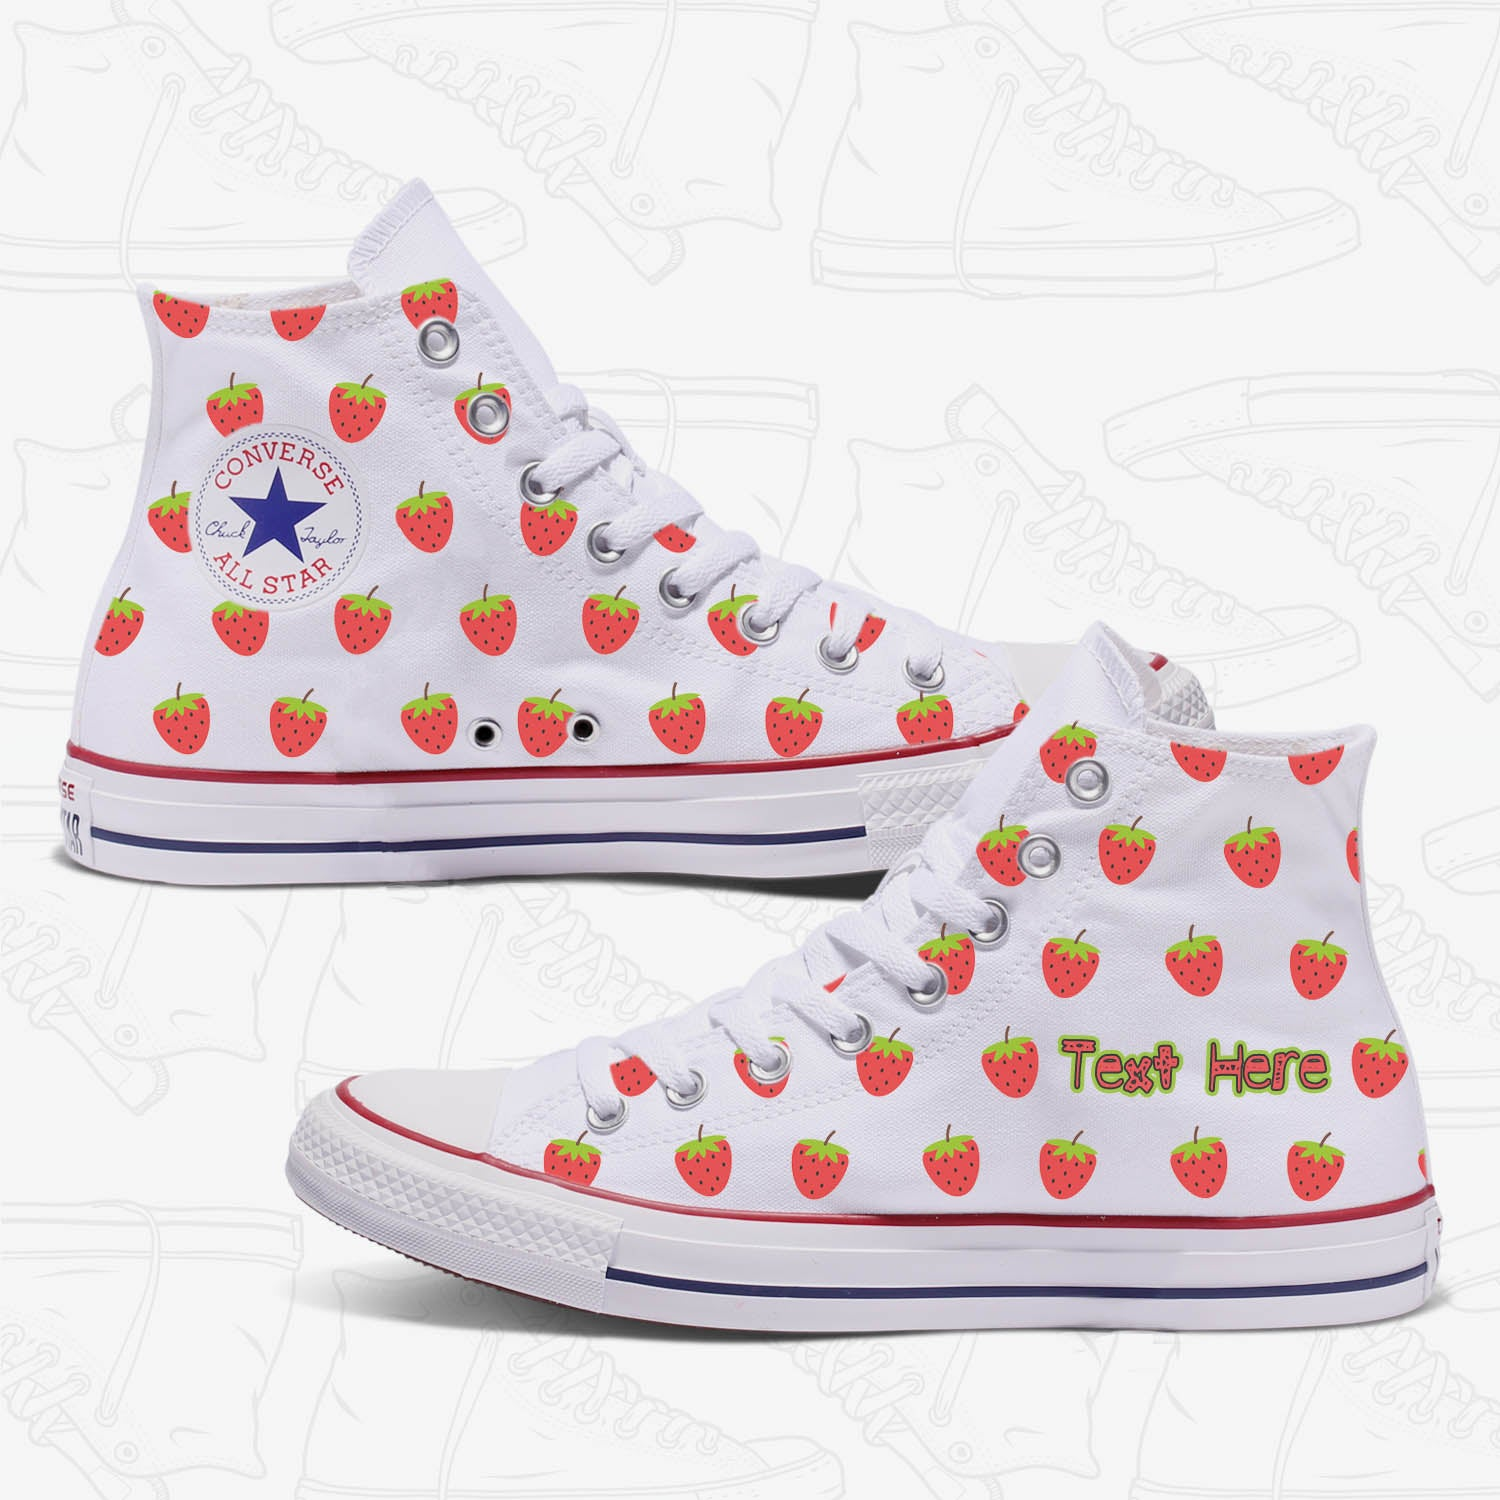 956f0dbd3ab5 Strawberry Custom Adult Converse Chuck Taylor ...